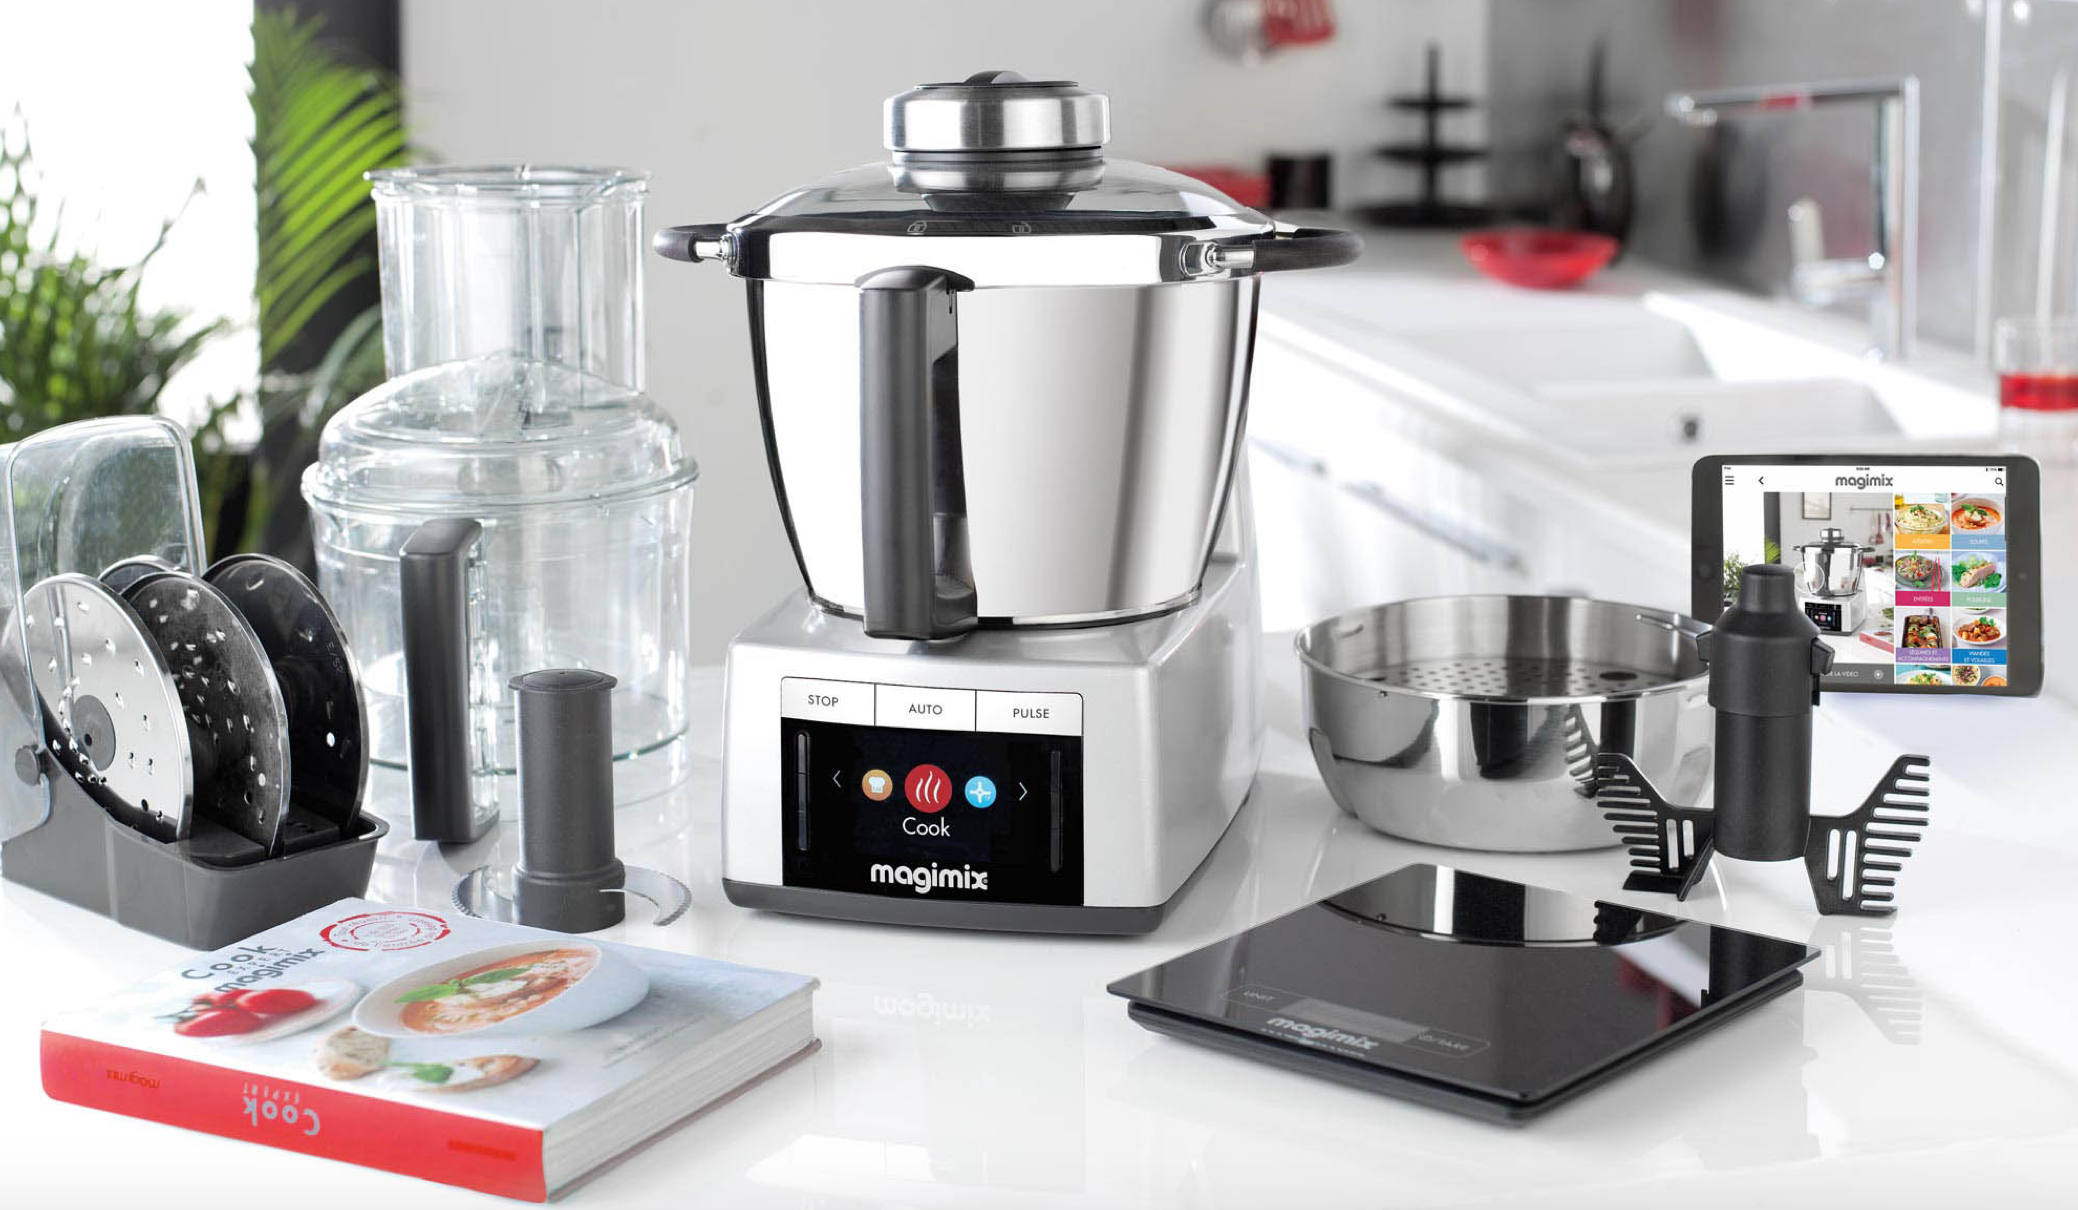 Magimix Cook Expert Product Review